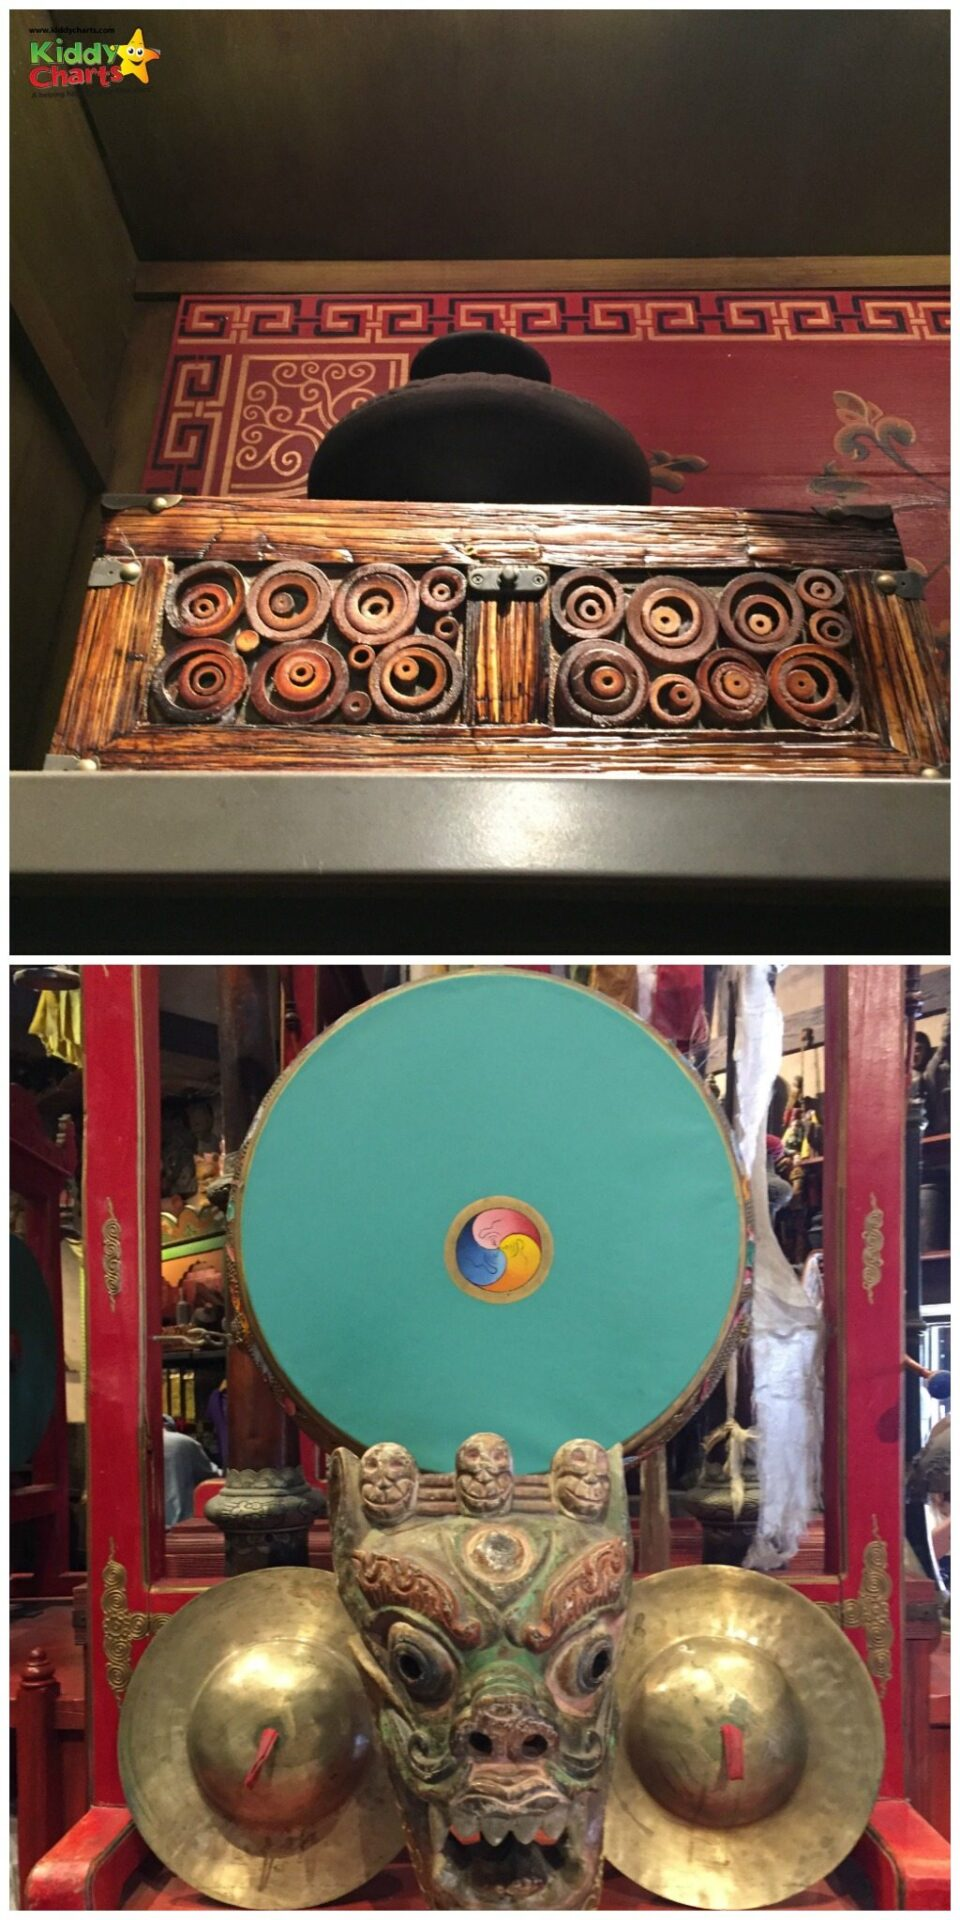 Watch out for two of the best hidden mickets in WDW in the Expedition Everest shop!